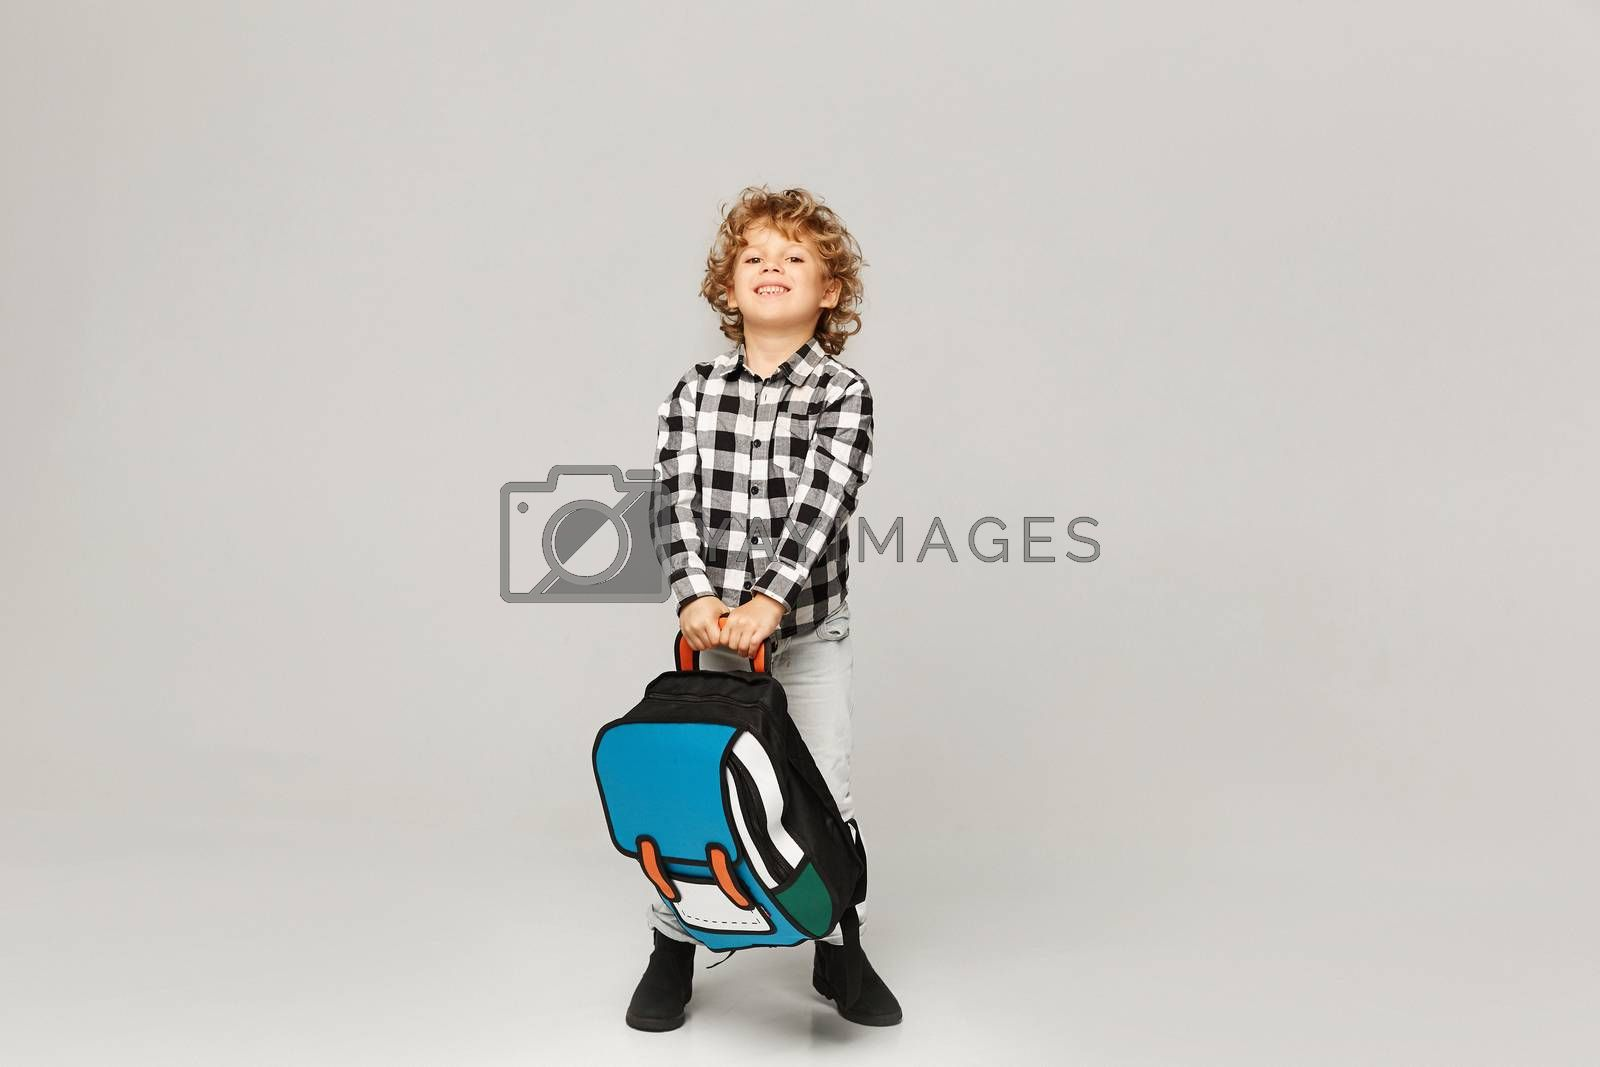 Back to school. A funny little boy from elementary school posing with a backpack over white background, isolated.